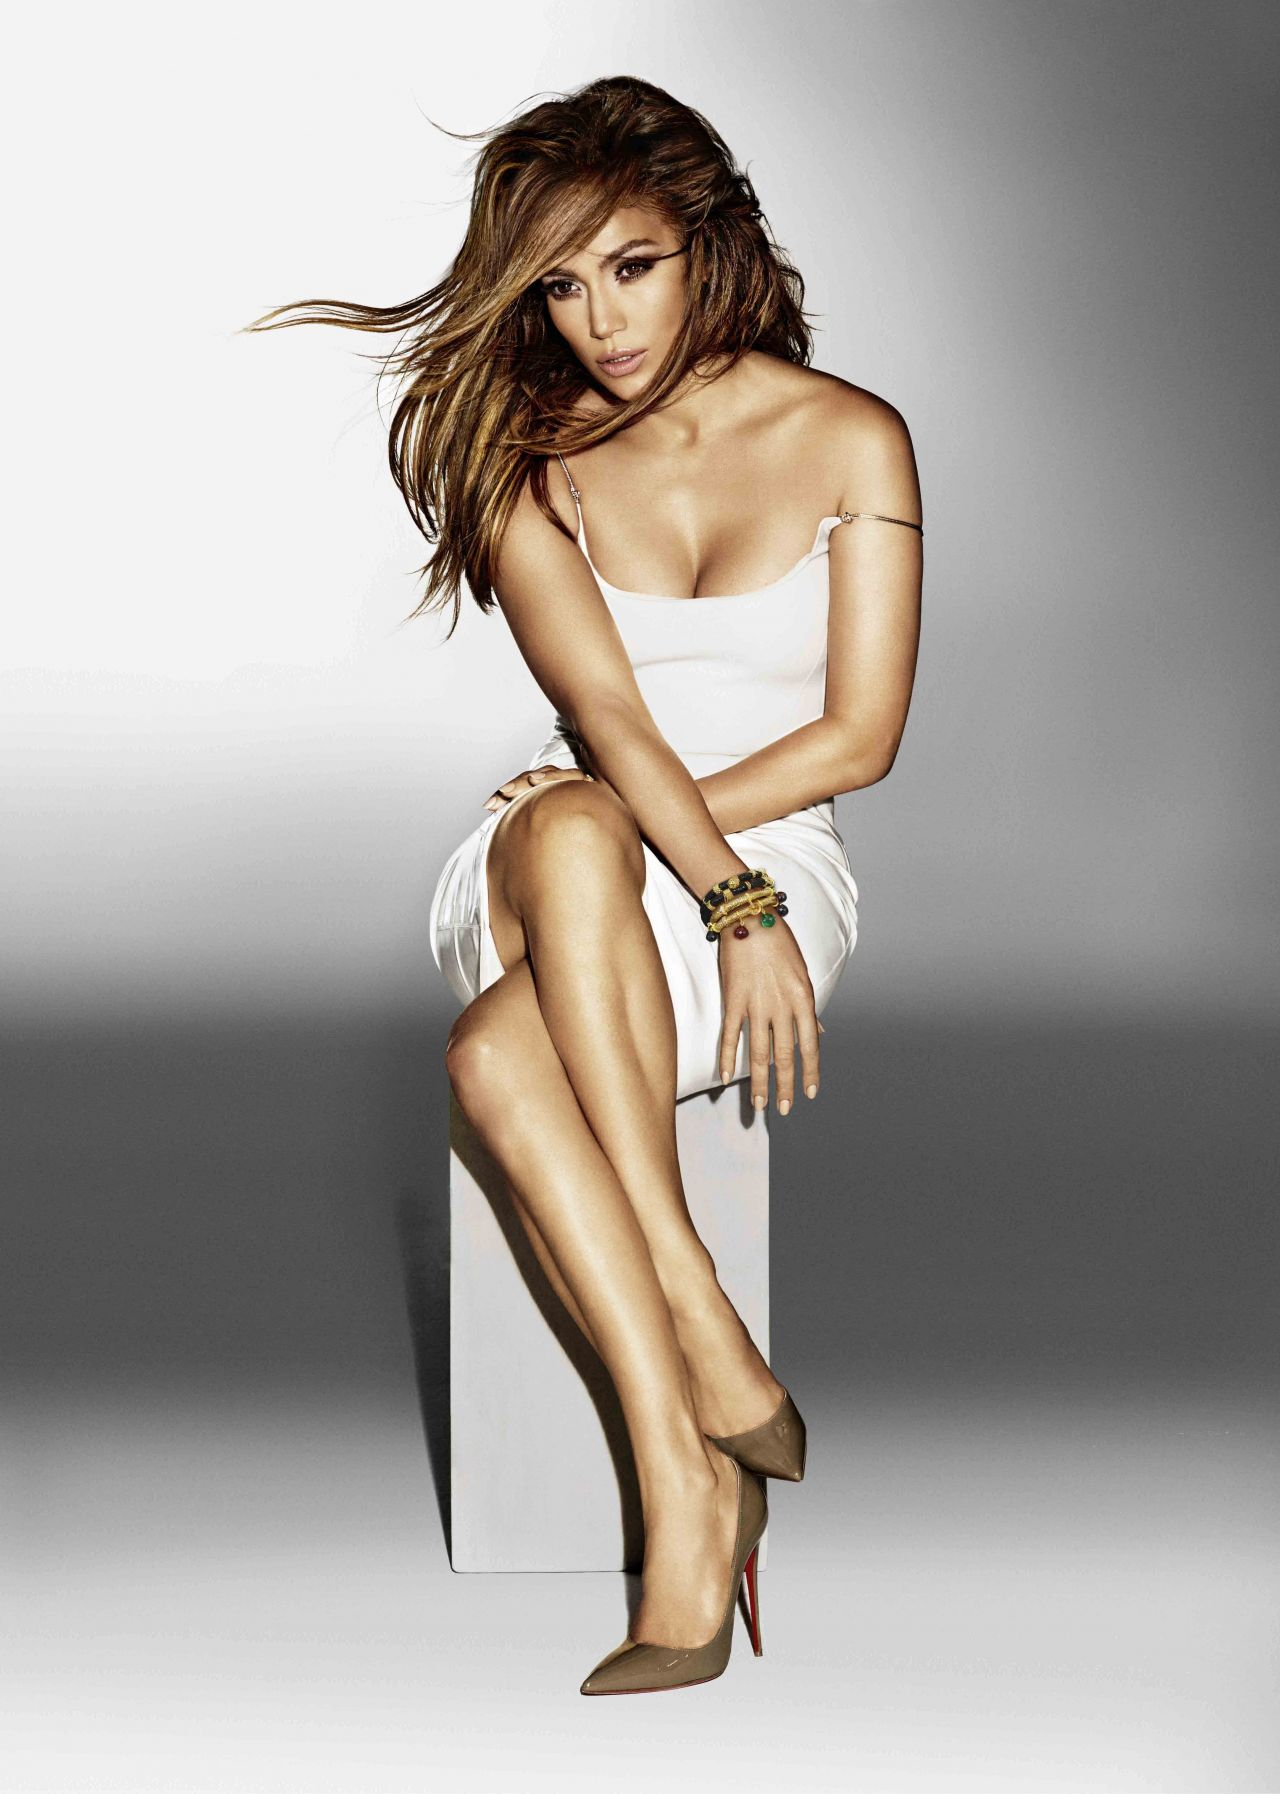 related posts jennifer lopez endless jewelry 2016 jennifer lopez ...